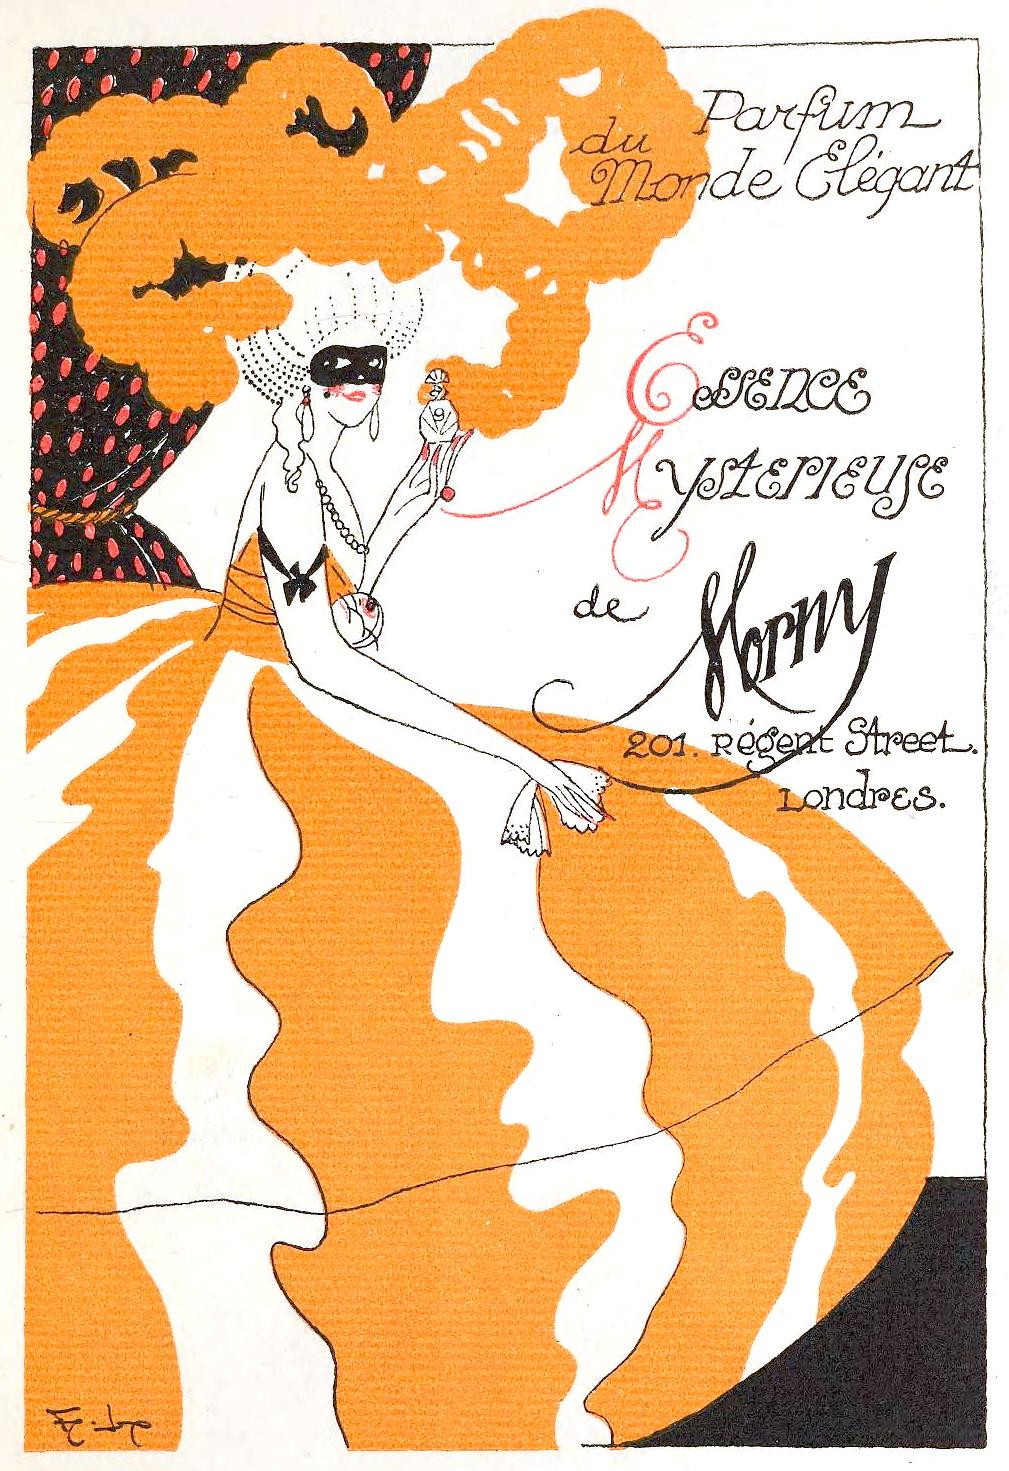 a 1920 perfume advertisement in a French fashion magazine, color illustration of a masked woman, de Morny perfume ad